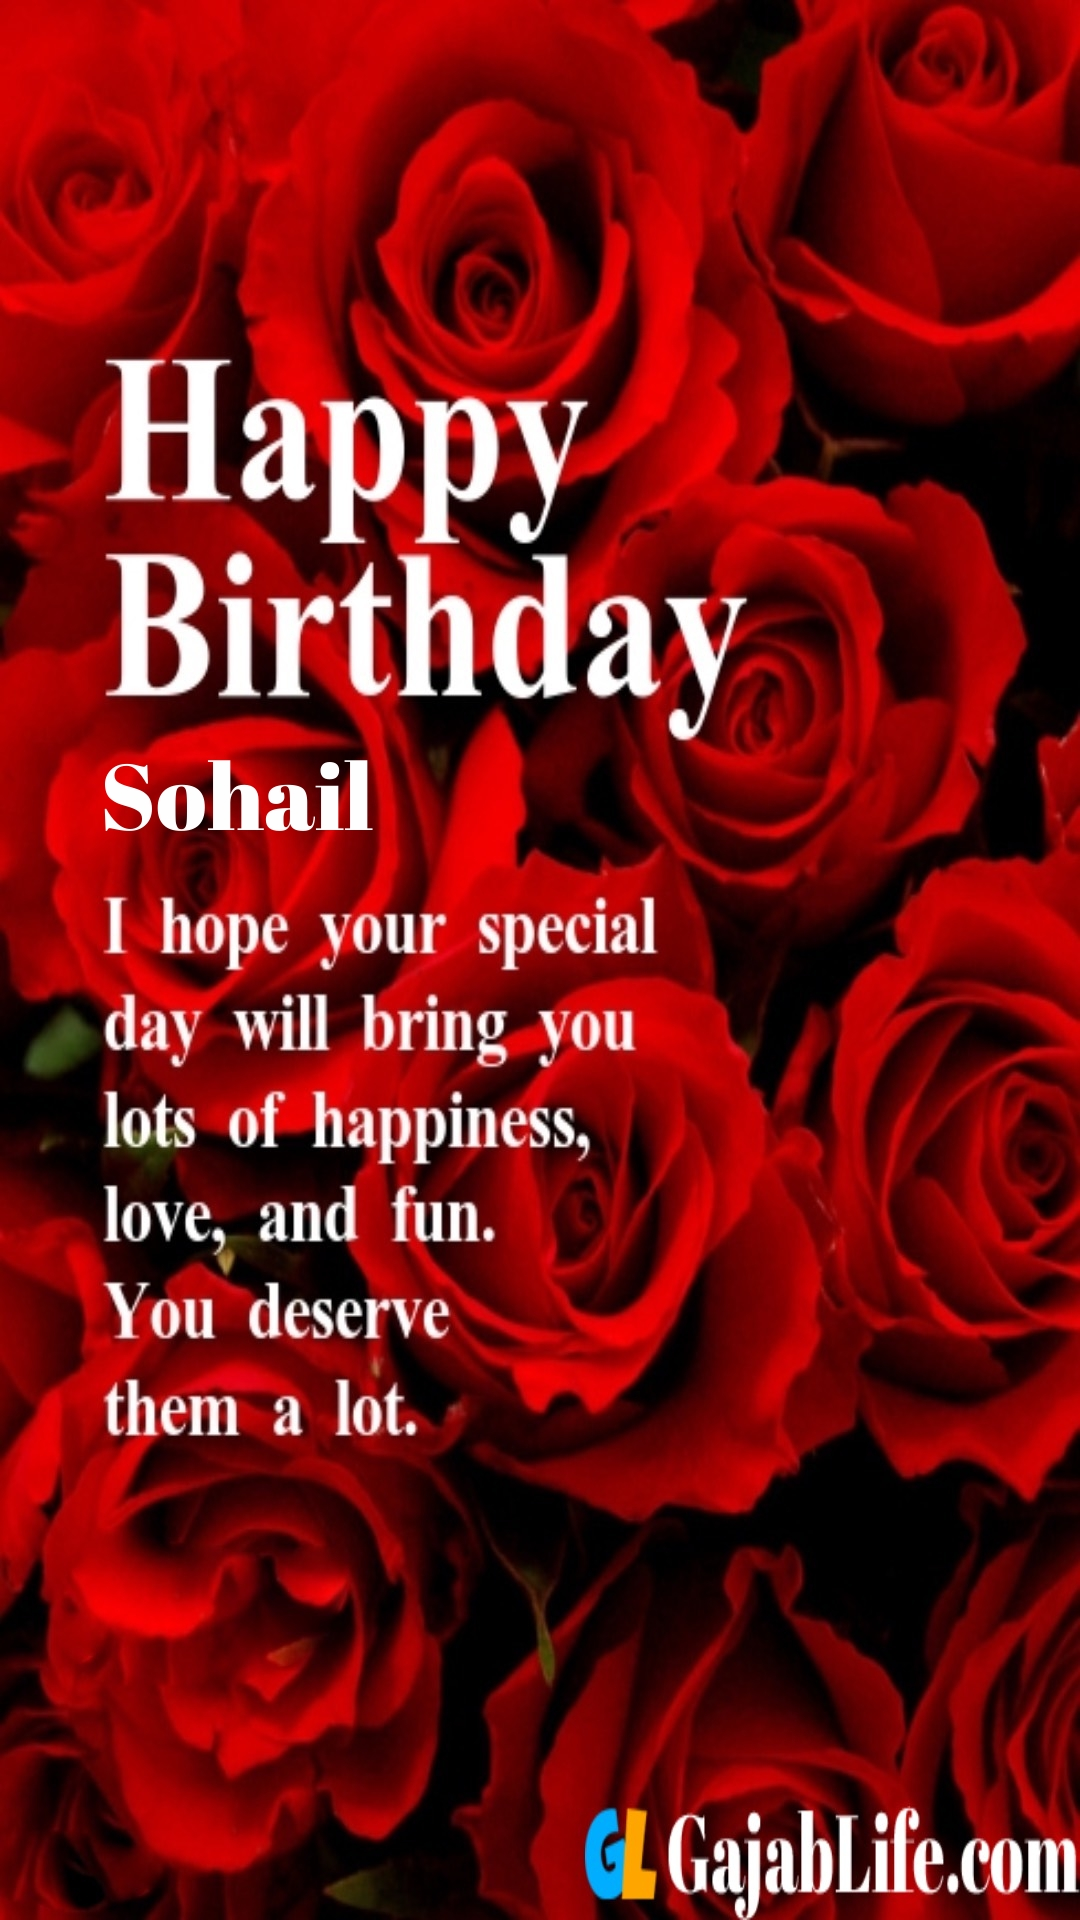 Sohail birthday greeting card with rose & love